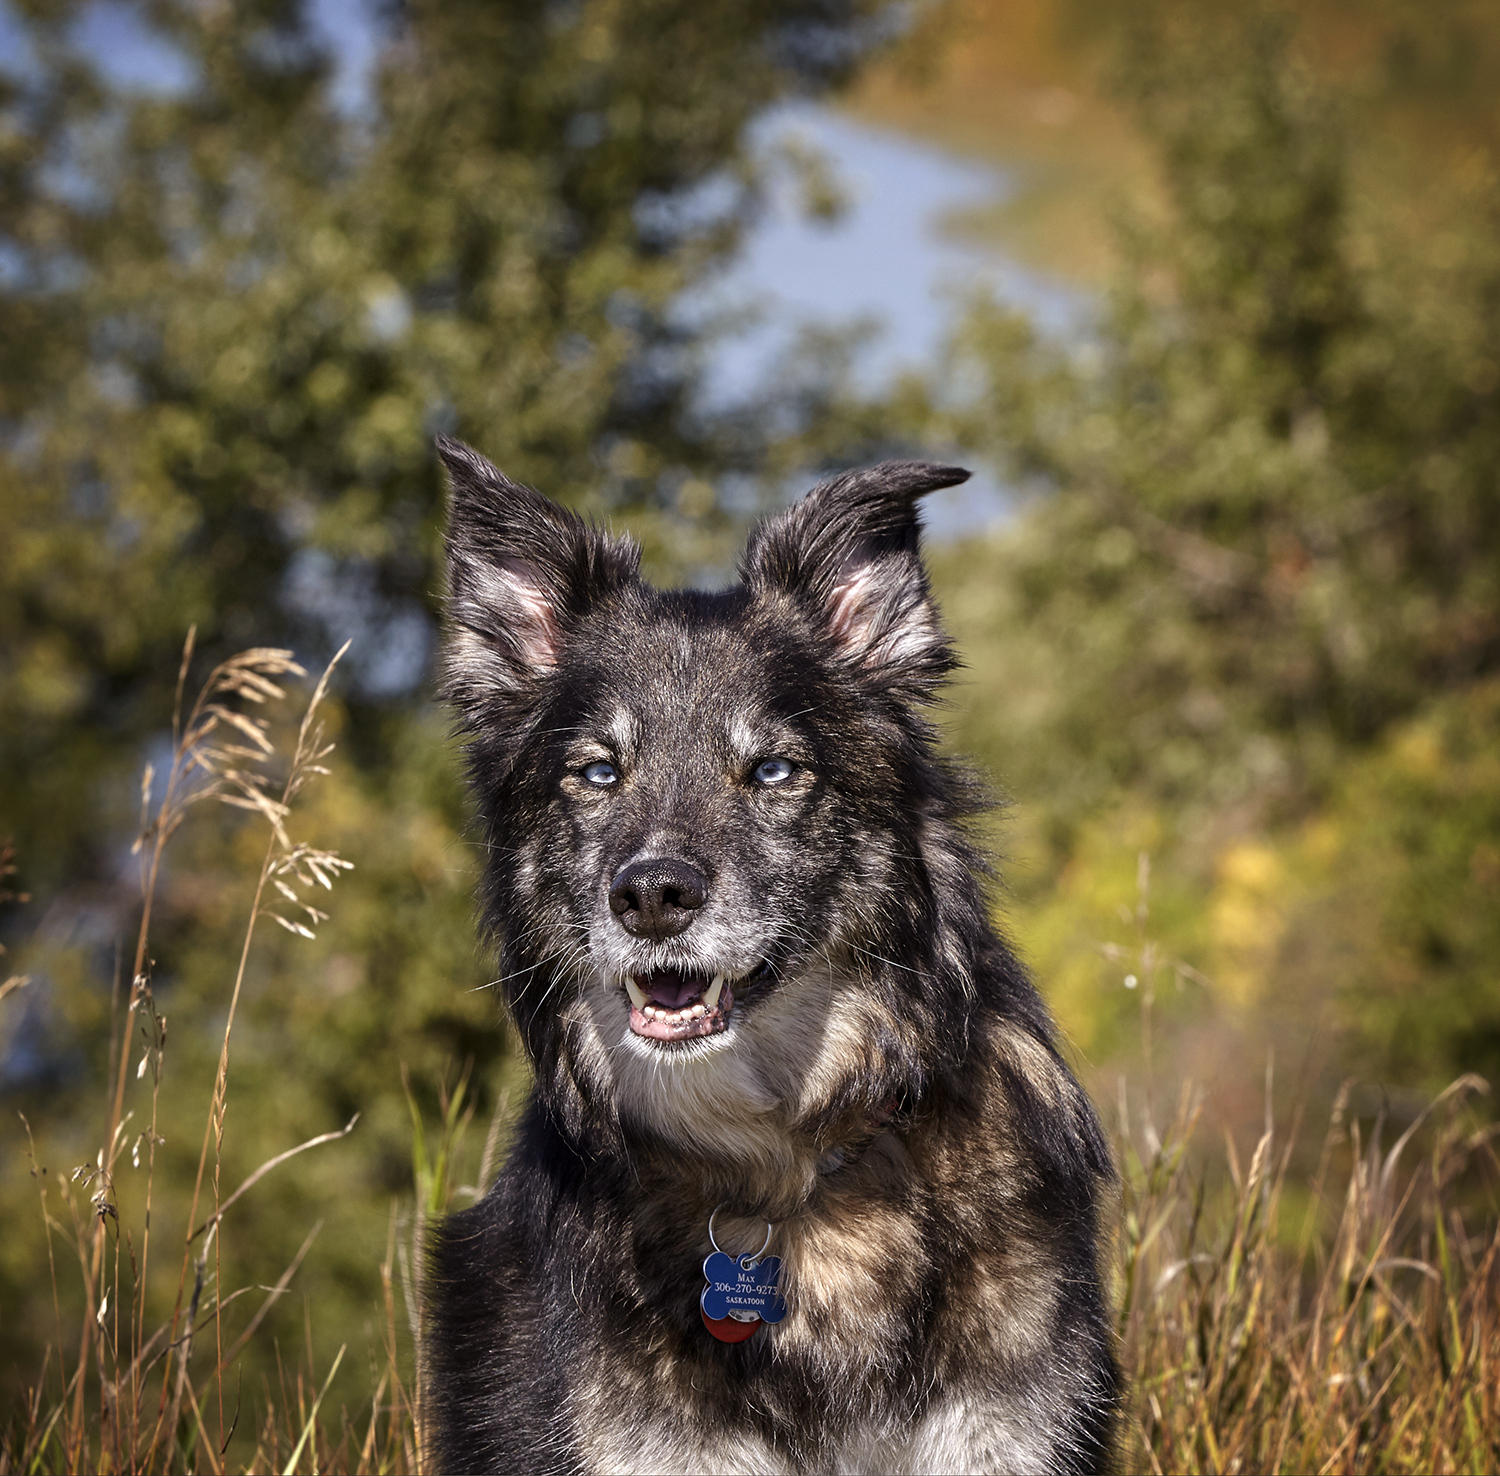 cindy-moleski-professional-photographer-saskatoon-saskatchewan-pets-dogs-huskycross-blue eyes-south saskatchewan river-29588-0060e copy.jpg